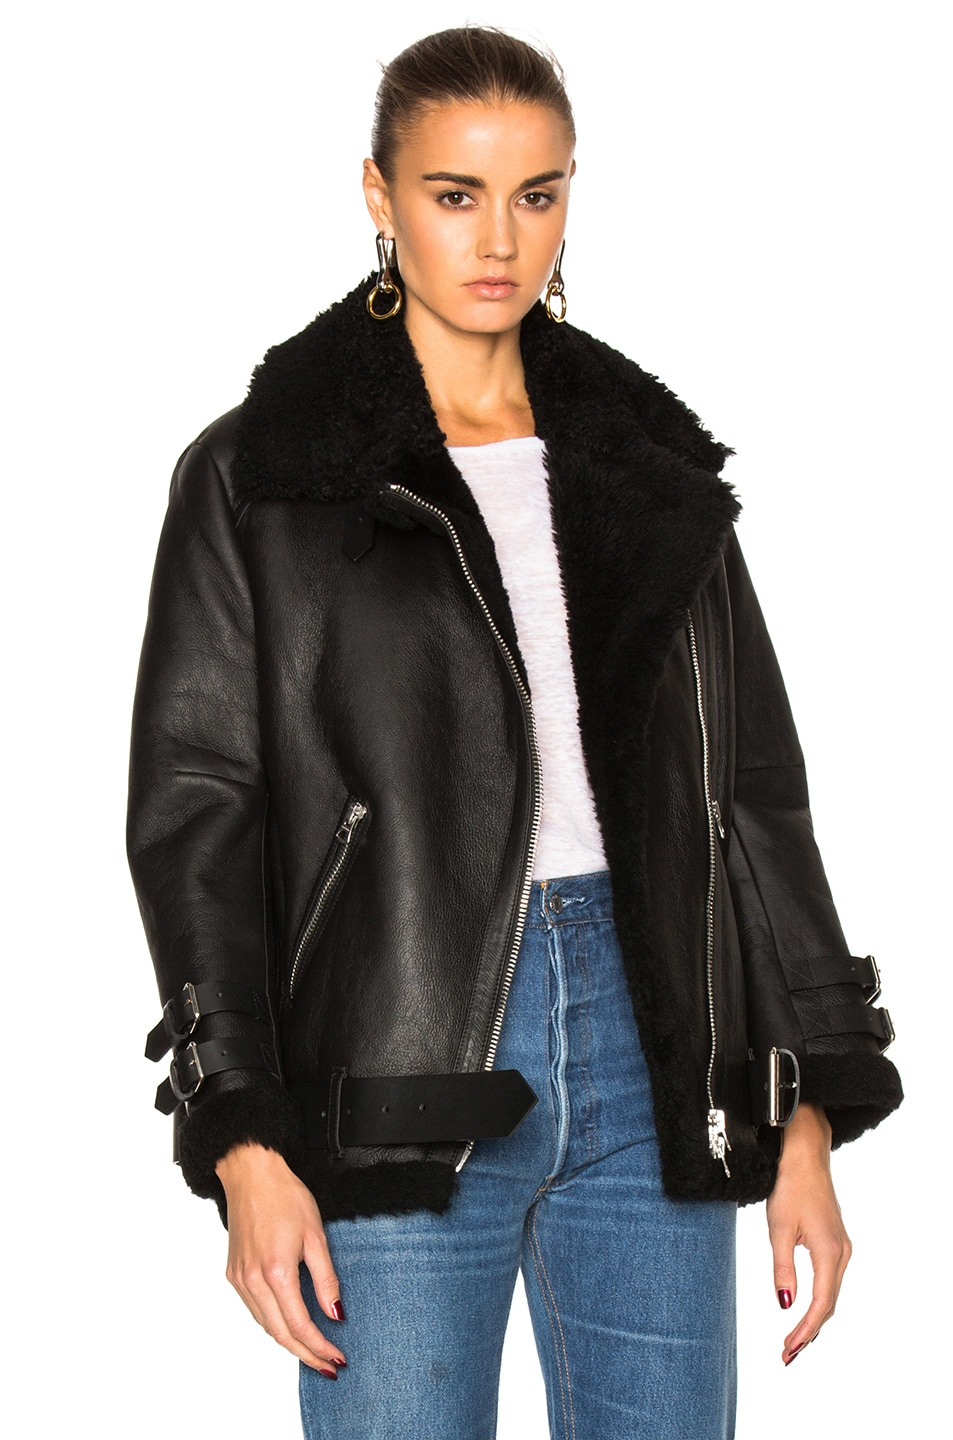 Velocite Shearling-Trimmed Leather Biker Jacket, Black